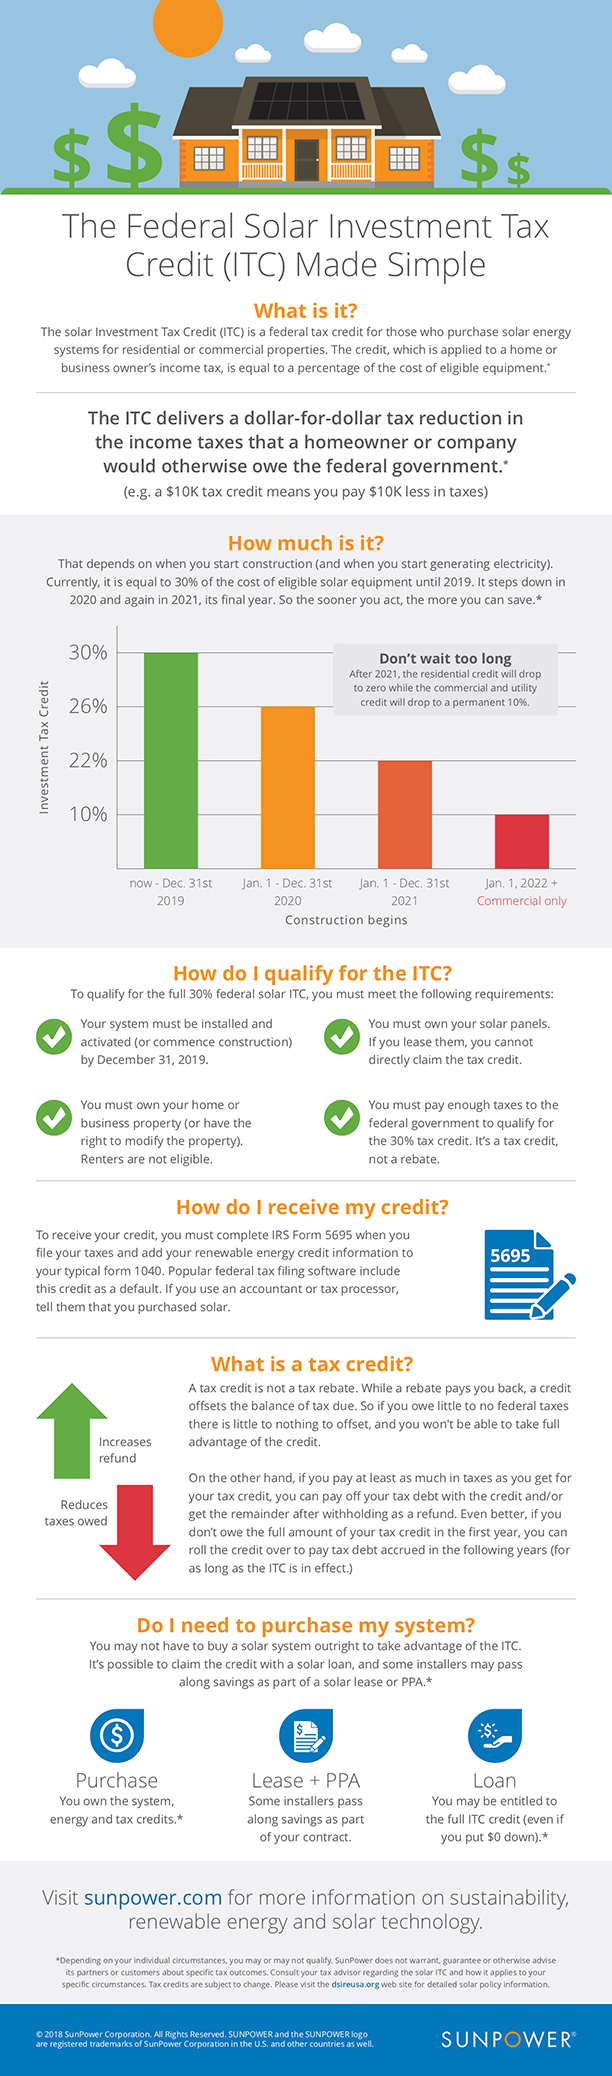 Federal Solar Investment Tax Credit (ITC) Made Simple